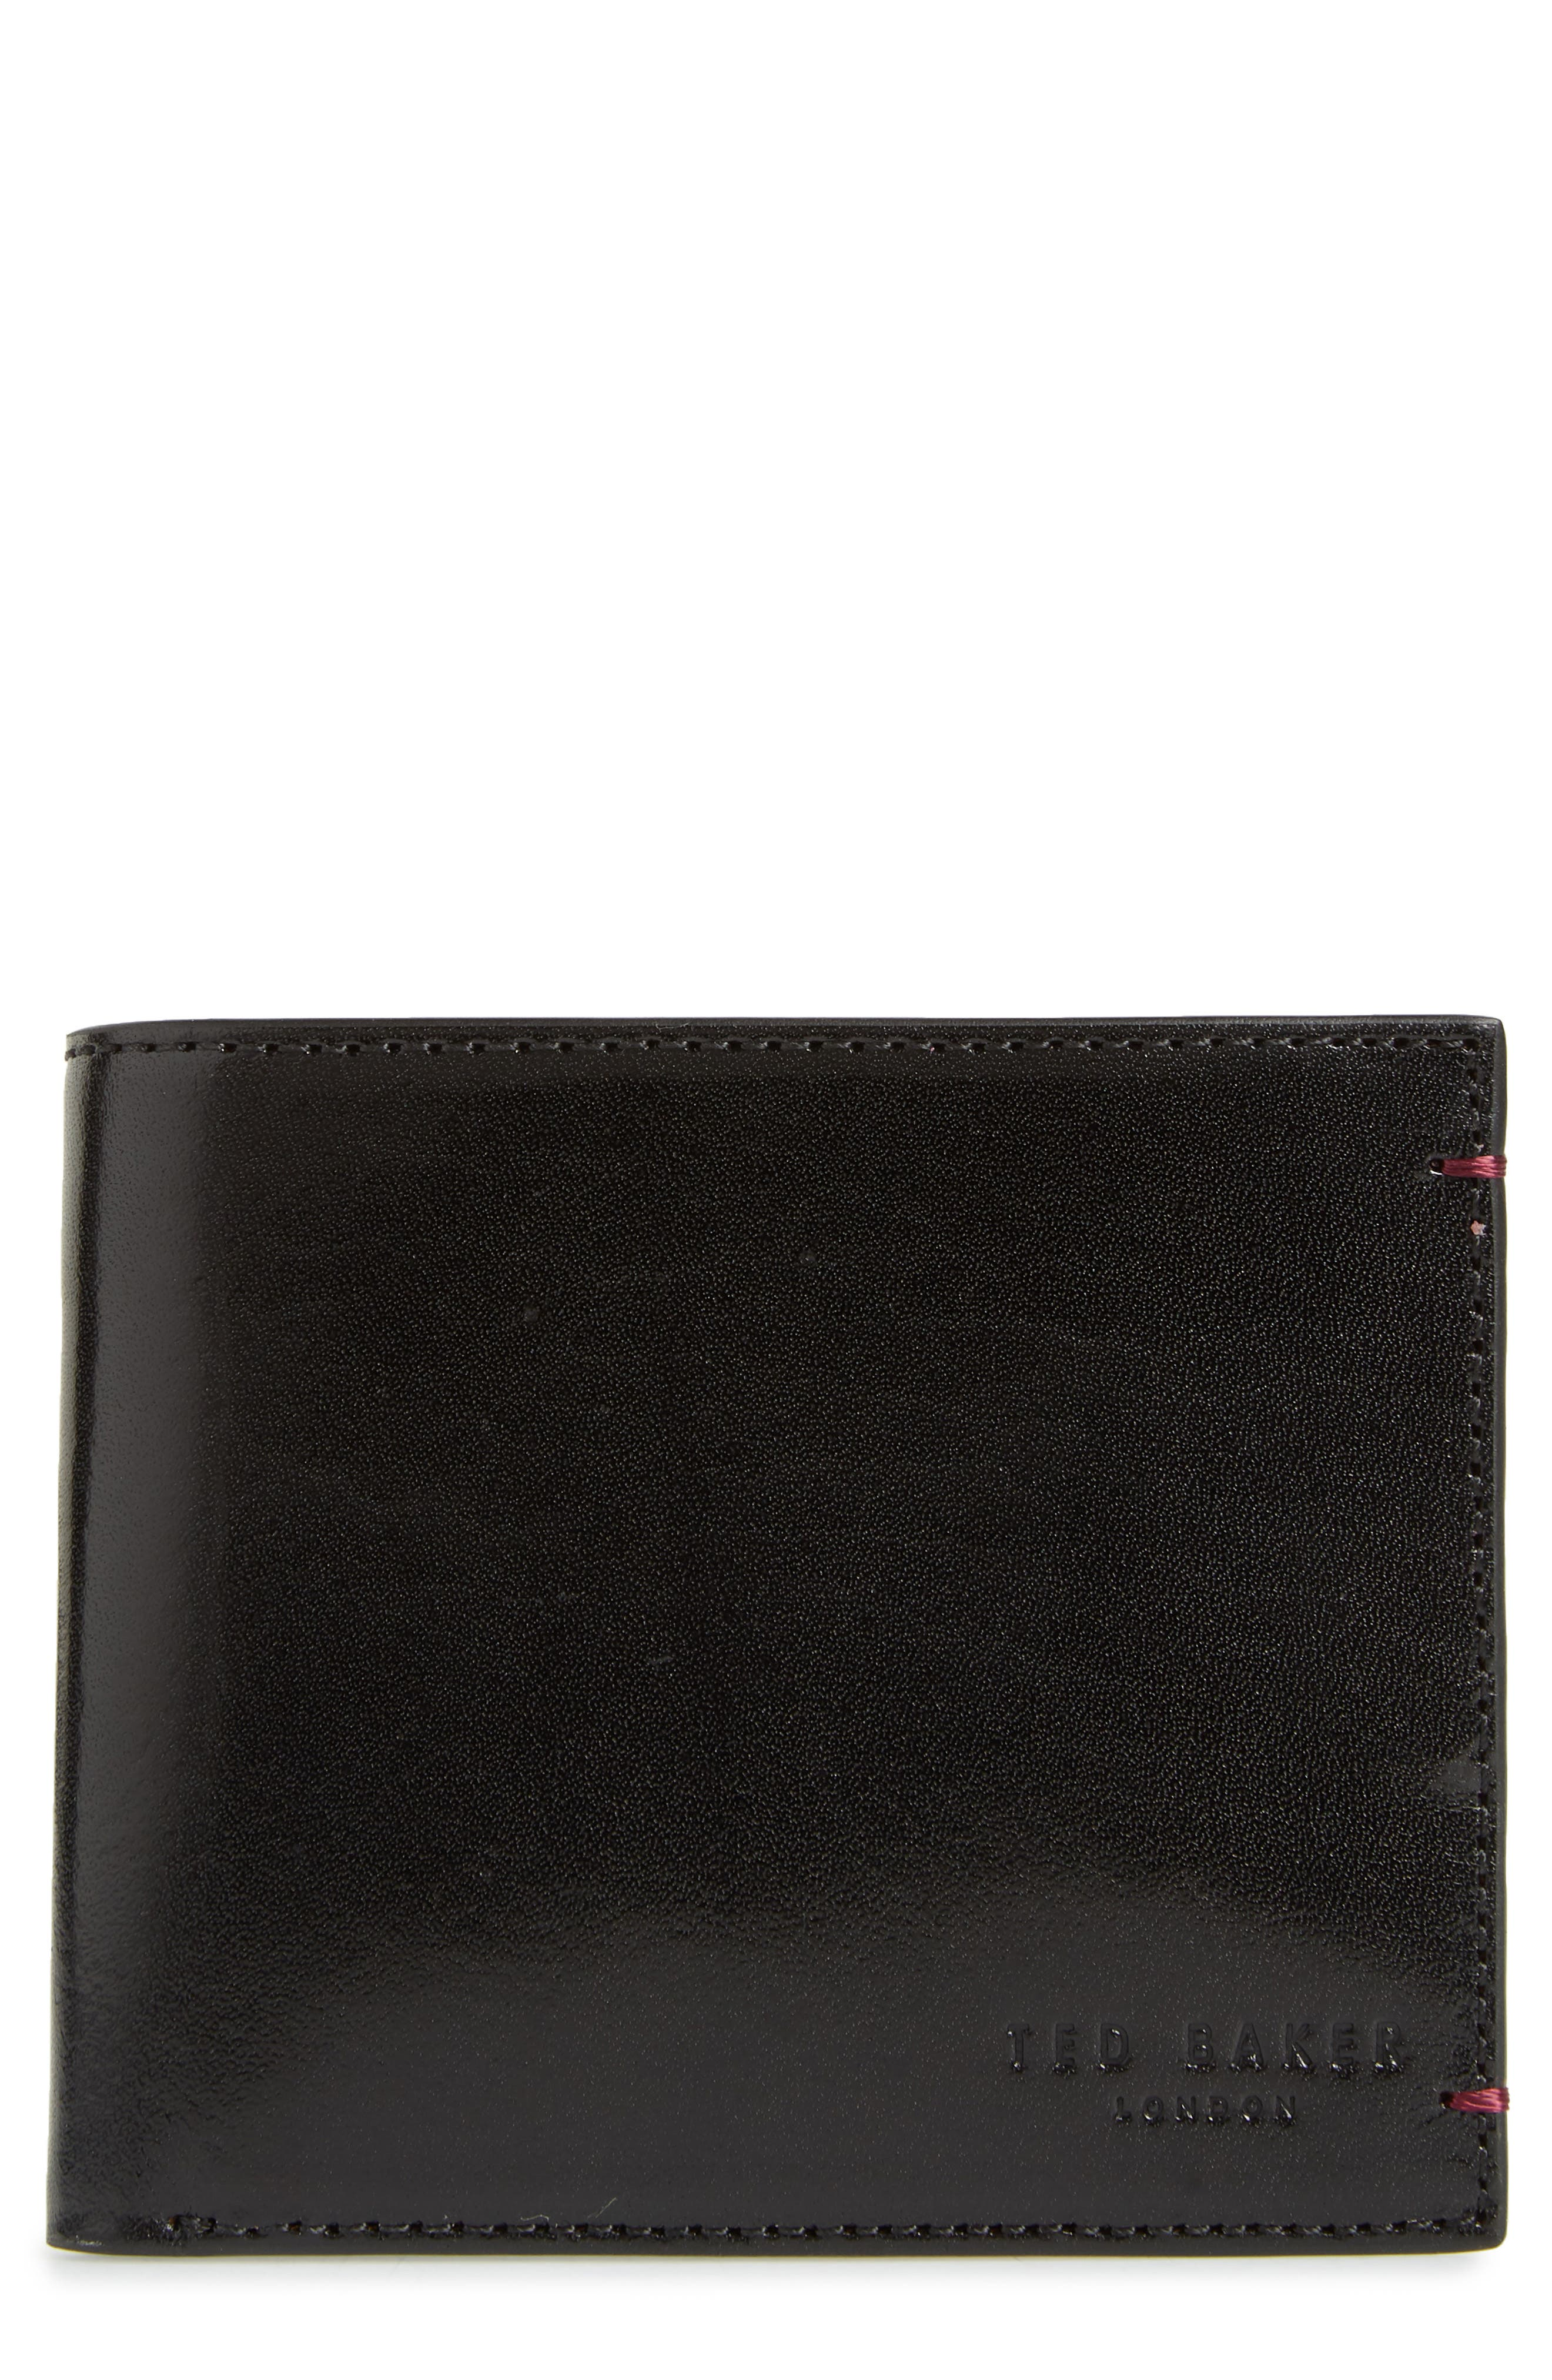 TED BAKER LONDON, Contrast Leather Wallet, Main thumbnail 1, color, BLACK